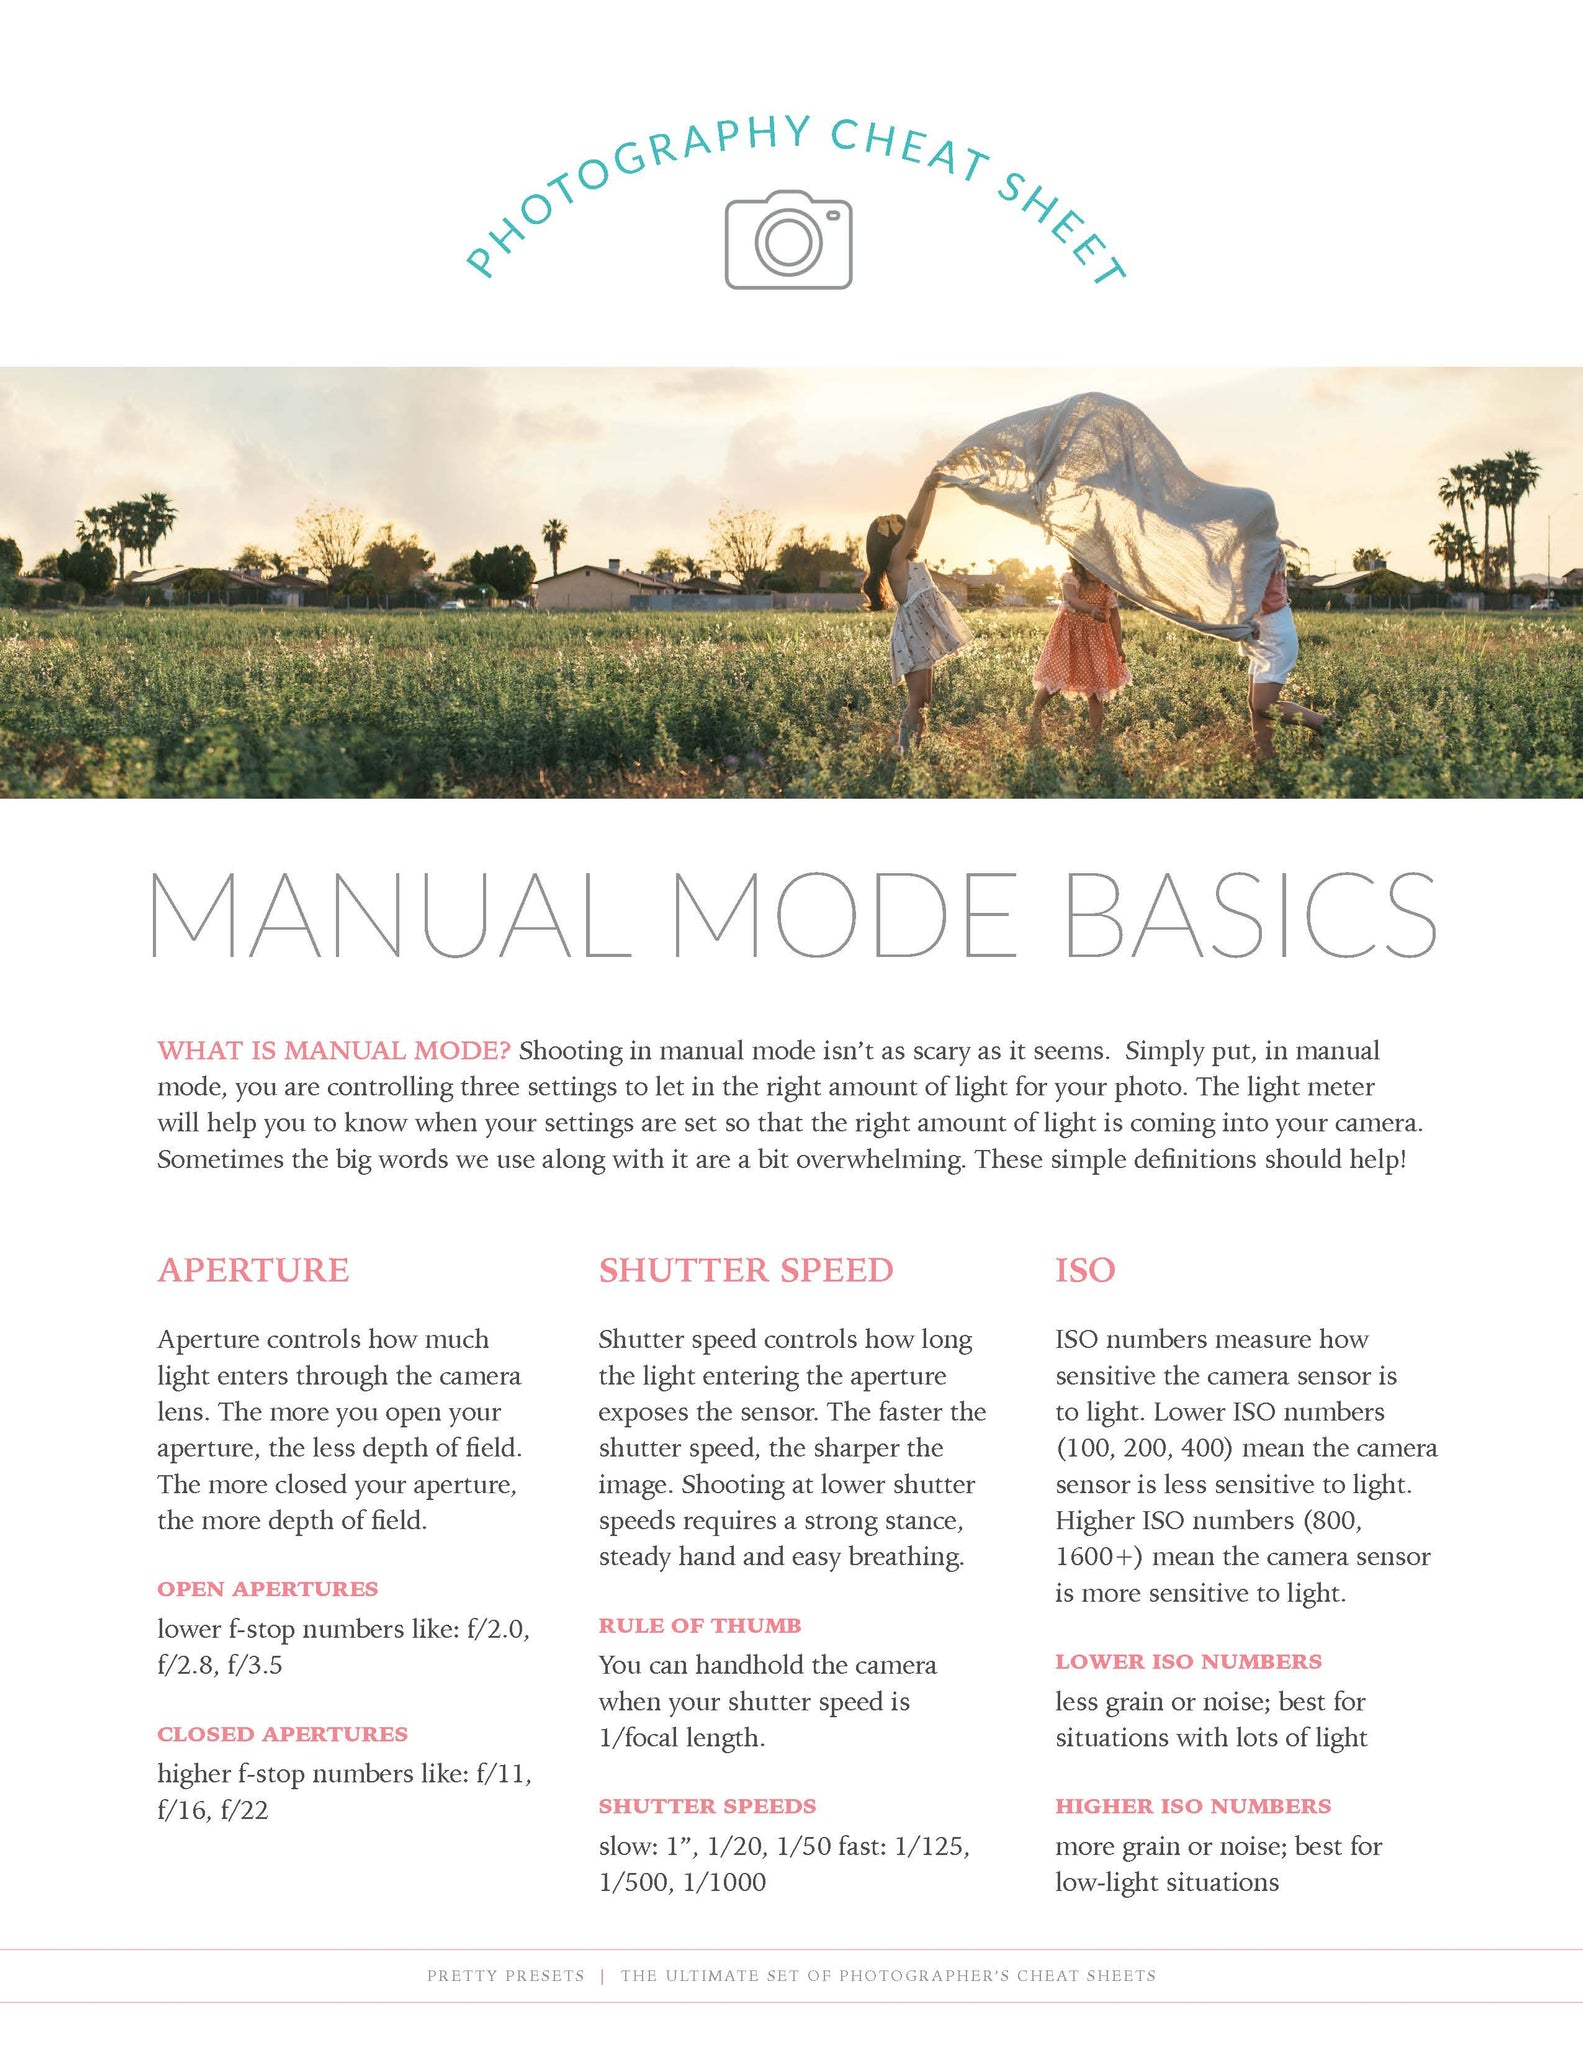 Manual Mode Cheat Sheet: Free Download – Pretty Presets for Lightroom